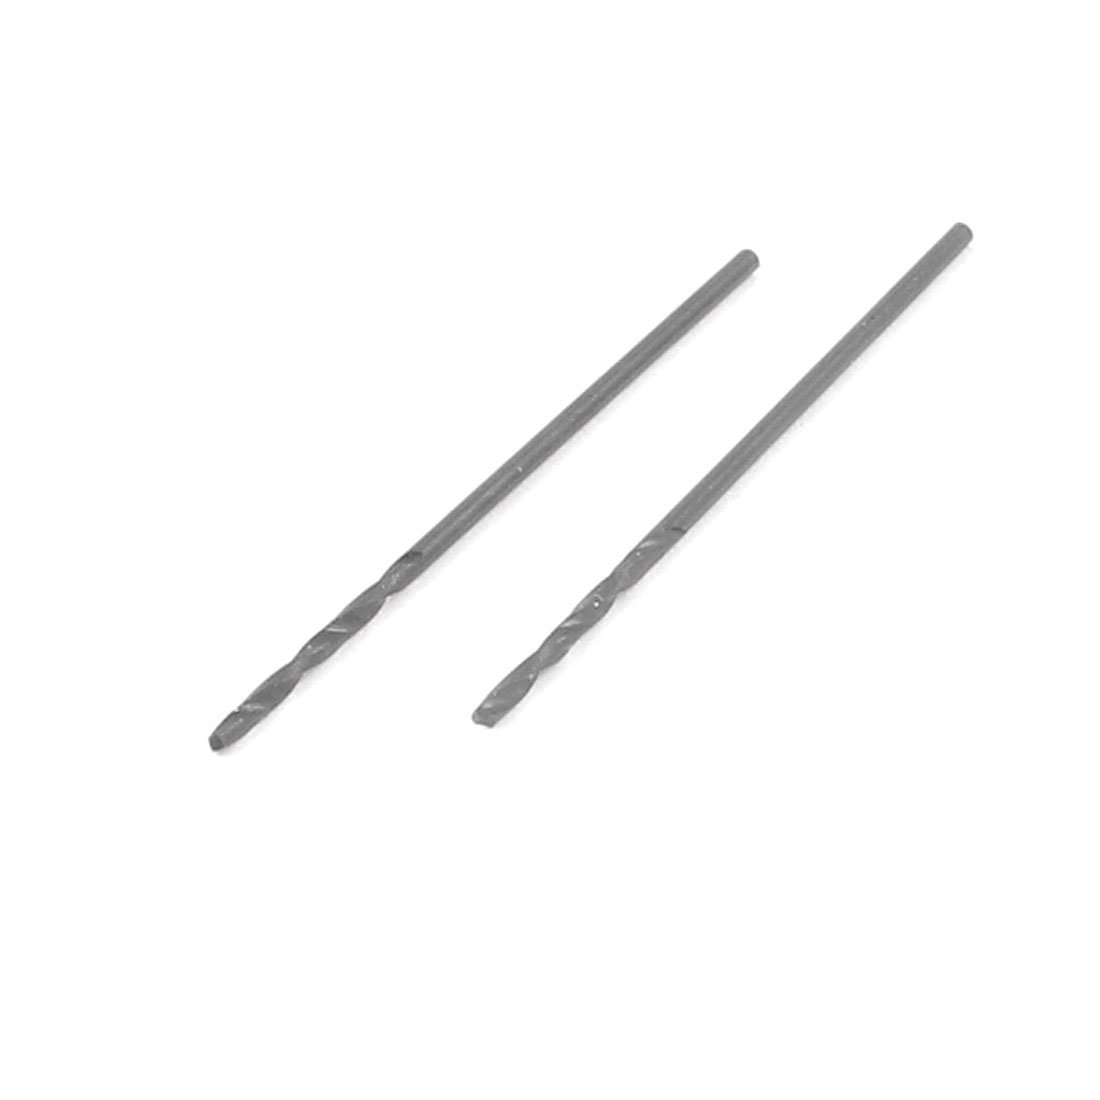 1  mm Dia Split Point 33  mm Lä nge High Speed Steel Twist-Bohrer Bit 2  Pcs Sourcingmap a13101100ux0769